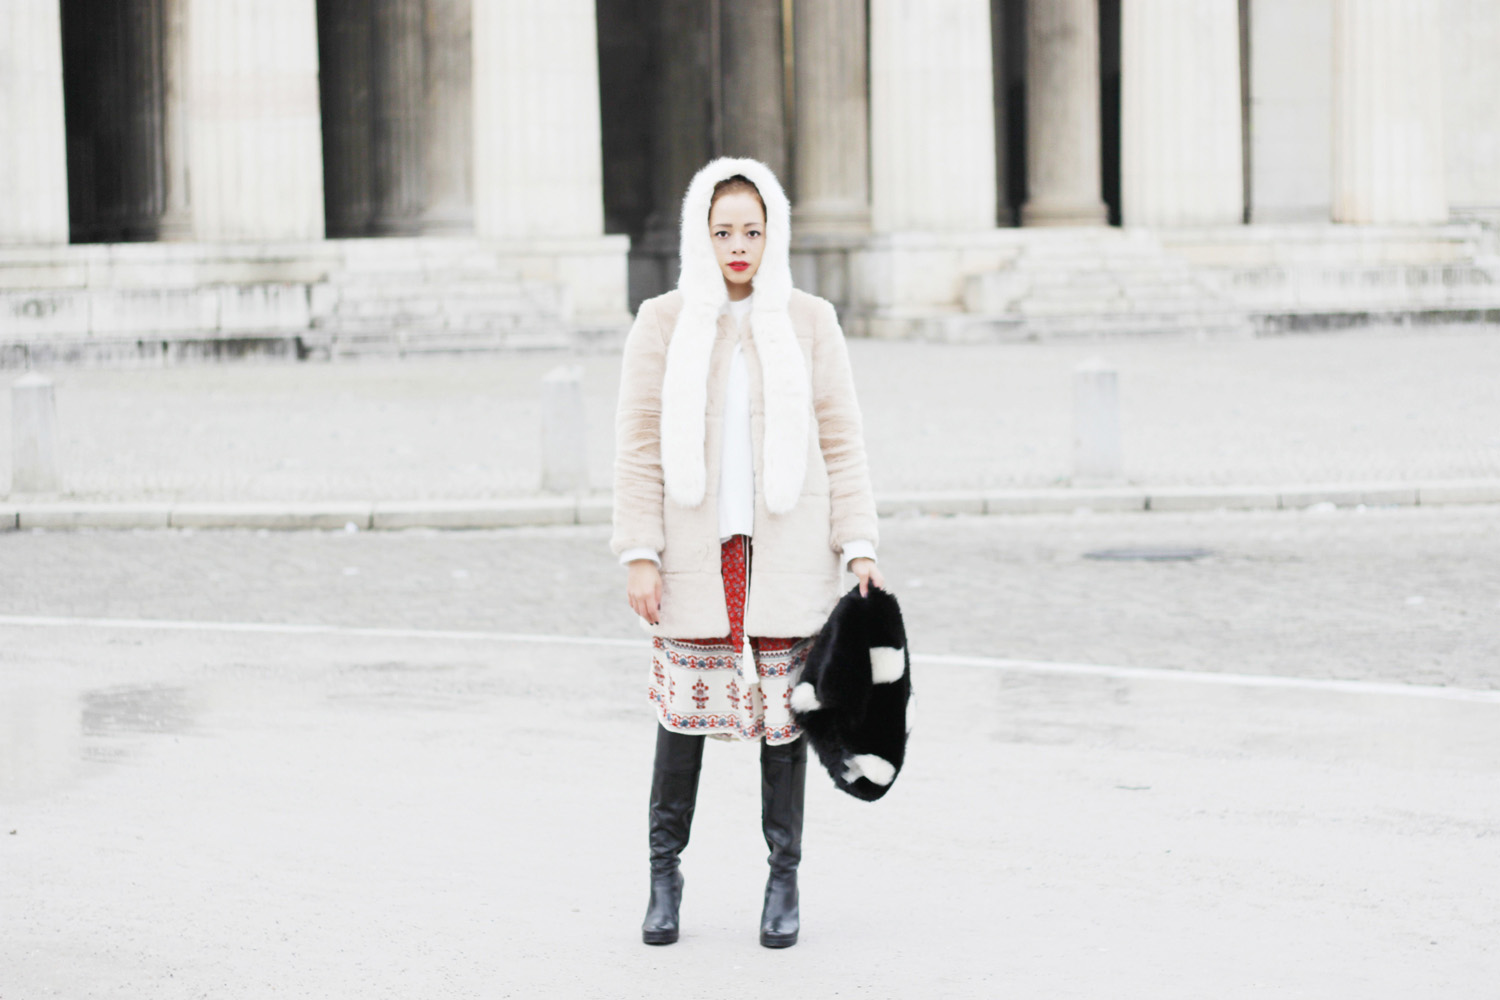 fatimayarie-white-fauxfur-cap-rose-coat-reddress-leatherboots-img_7005